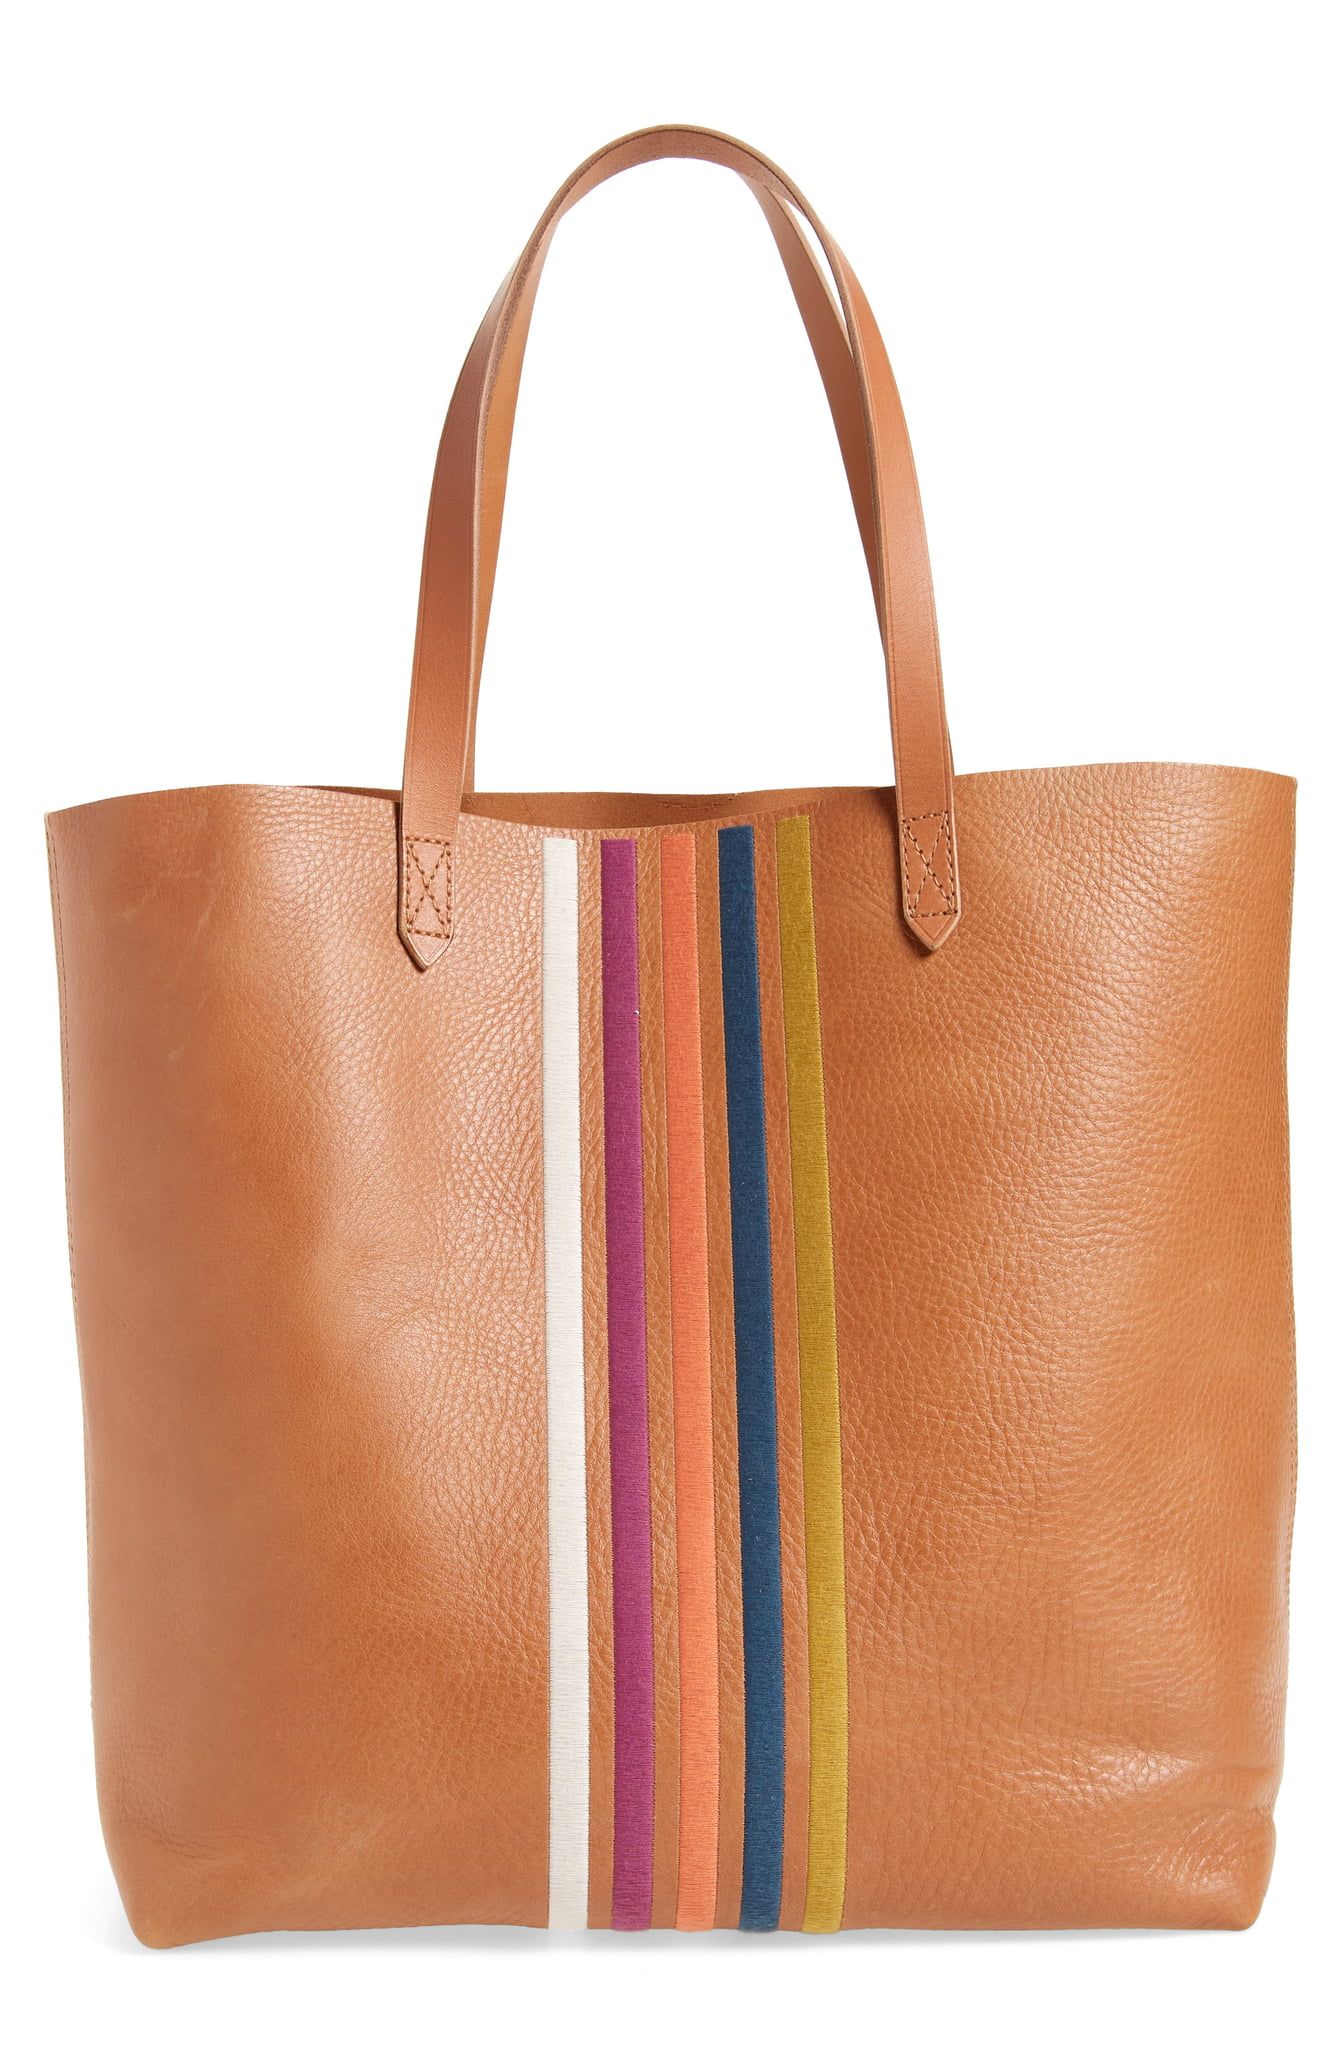 "Adding this{&nbsp;}<a  href=""https://www.nordstrom.com/s/madewell-the-transport-stripe-embroidered-tote/5612387?origin=keywordsearch-personalizedsort&breadcrumb=Home%2FAll%20Results&color=desert%20camel%20rainbow"" target=""_blank"" title=""https://www.nordstrom.com/s/madewell-the-transport-stripe-embroidered-tote/5612387?origin=keywordsearch-personalizedsort&breadcrumb=Home%2FAll%20Results&color=desert%20camel%20rainbow"">Madewell Transport Tote</a>{&nbsp;}to my list for sure! $119.90 (after sale $198) (Image: Nordstrom)"